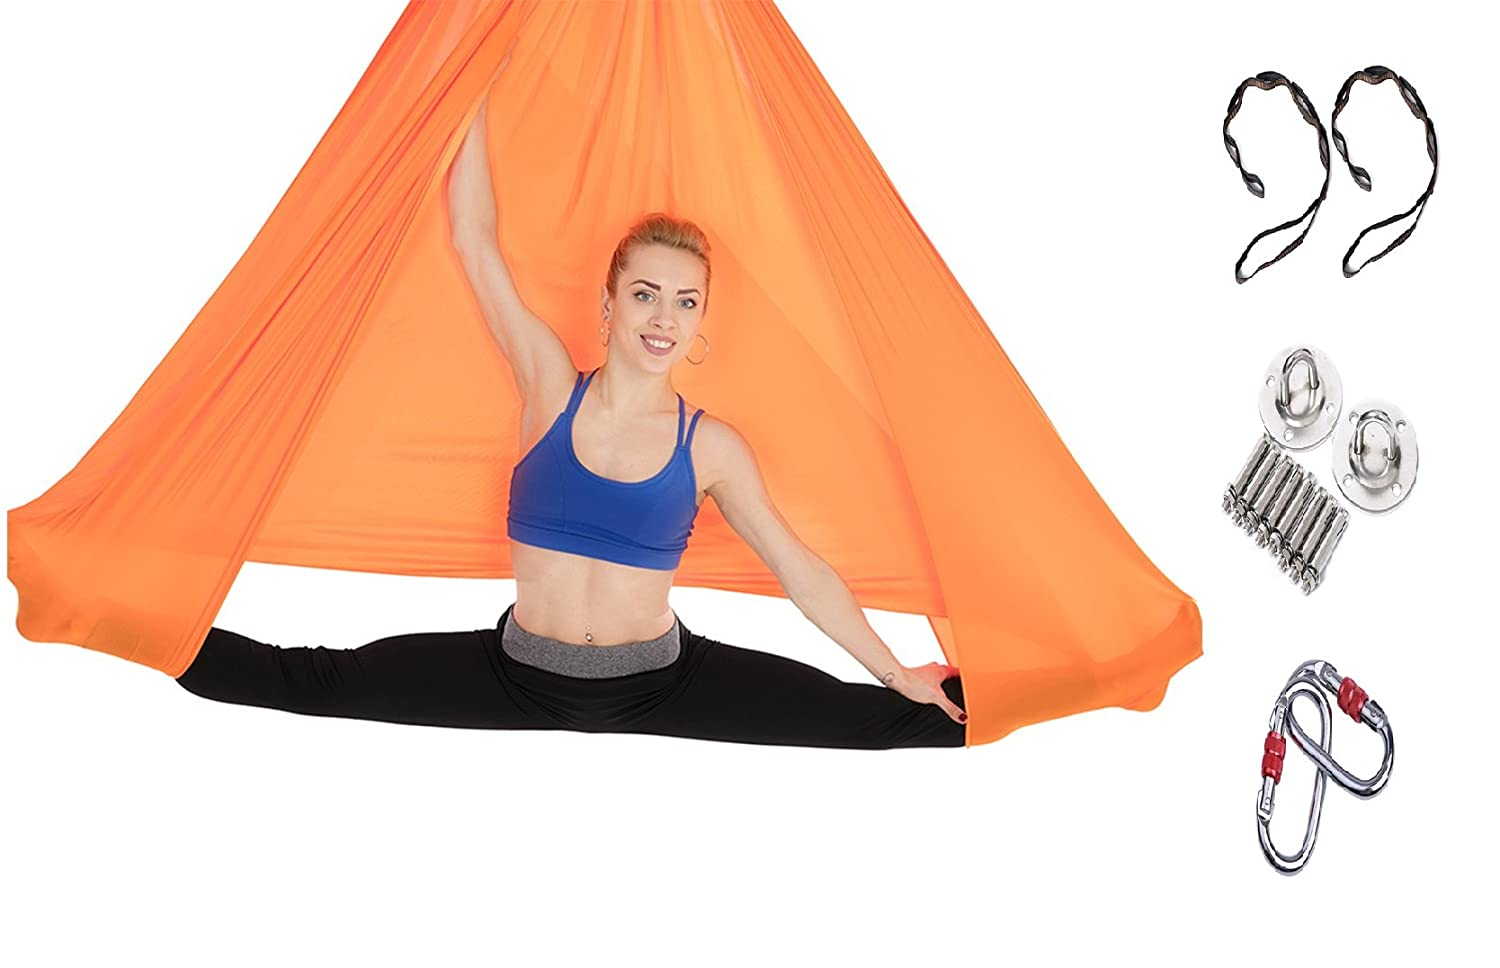 Tofern Set Aerial Yoga Tuch 500 x 280cm Bruchlast 900kg für Anti-Gravity Outdoor Indoor